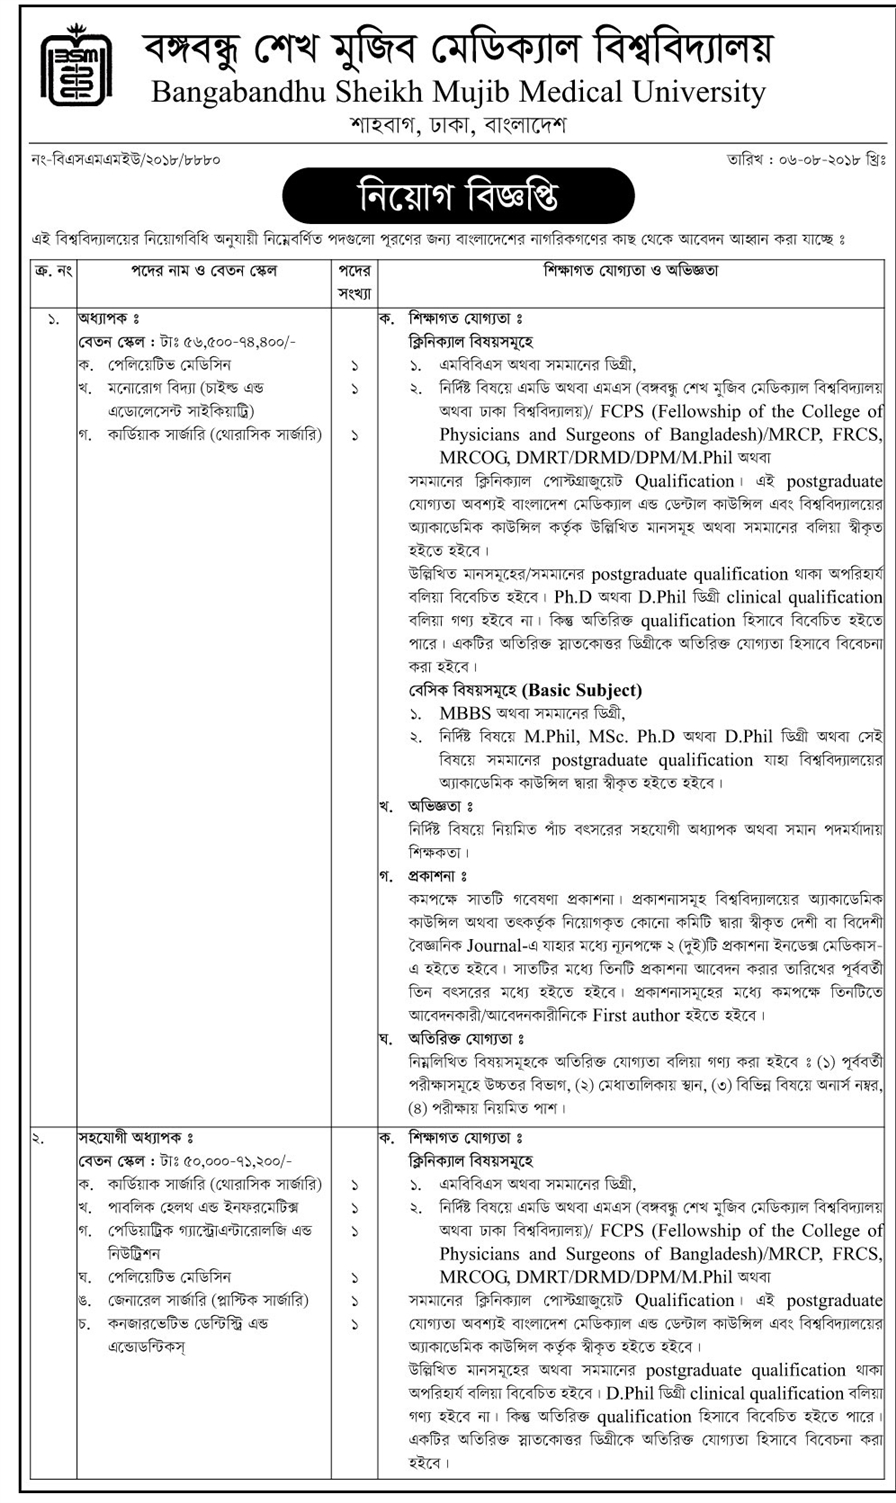 Bangabandhu Sheikh Mujib Medical University (BSMMU) Job Circular 2018